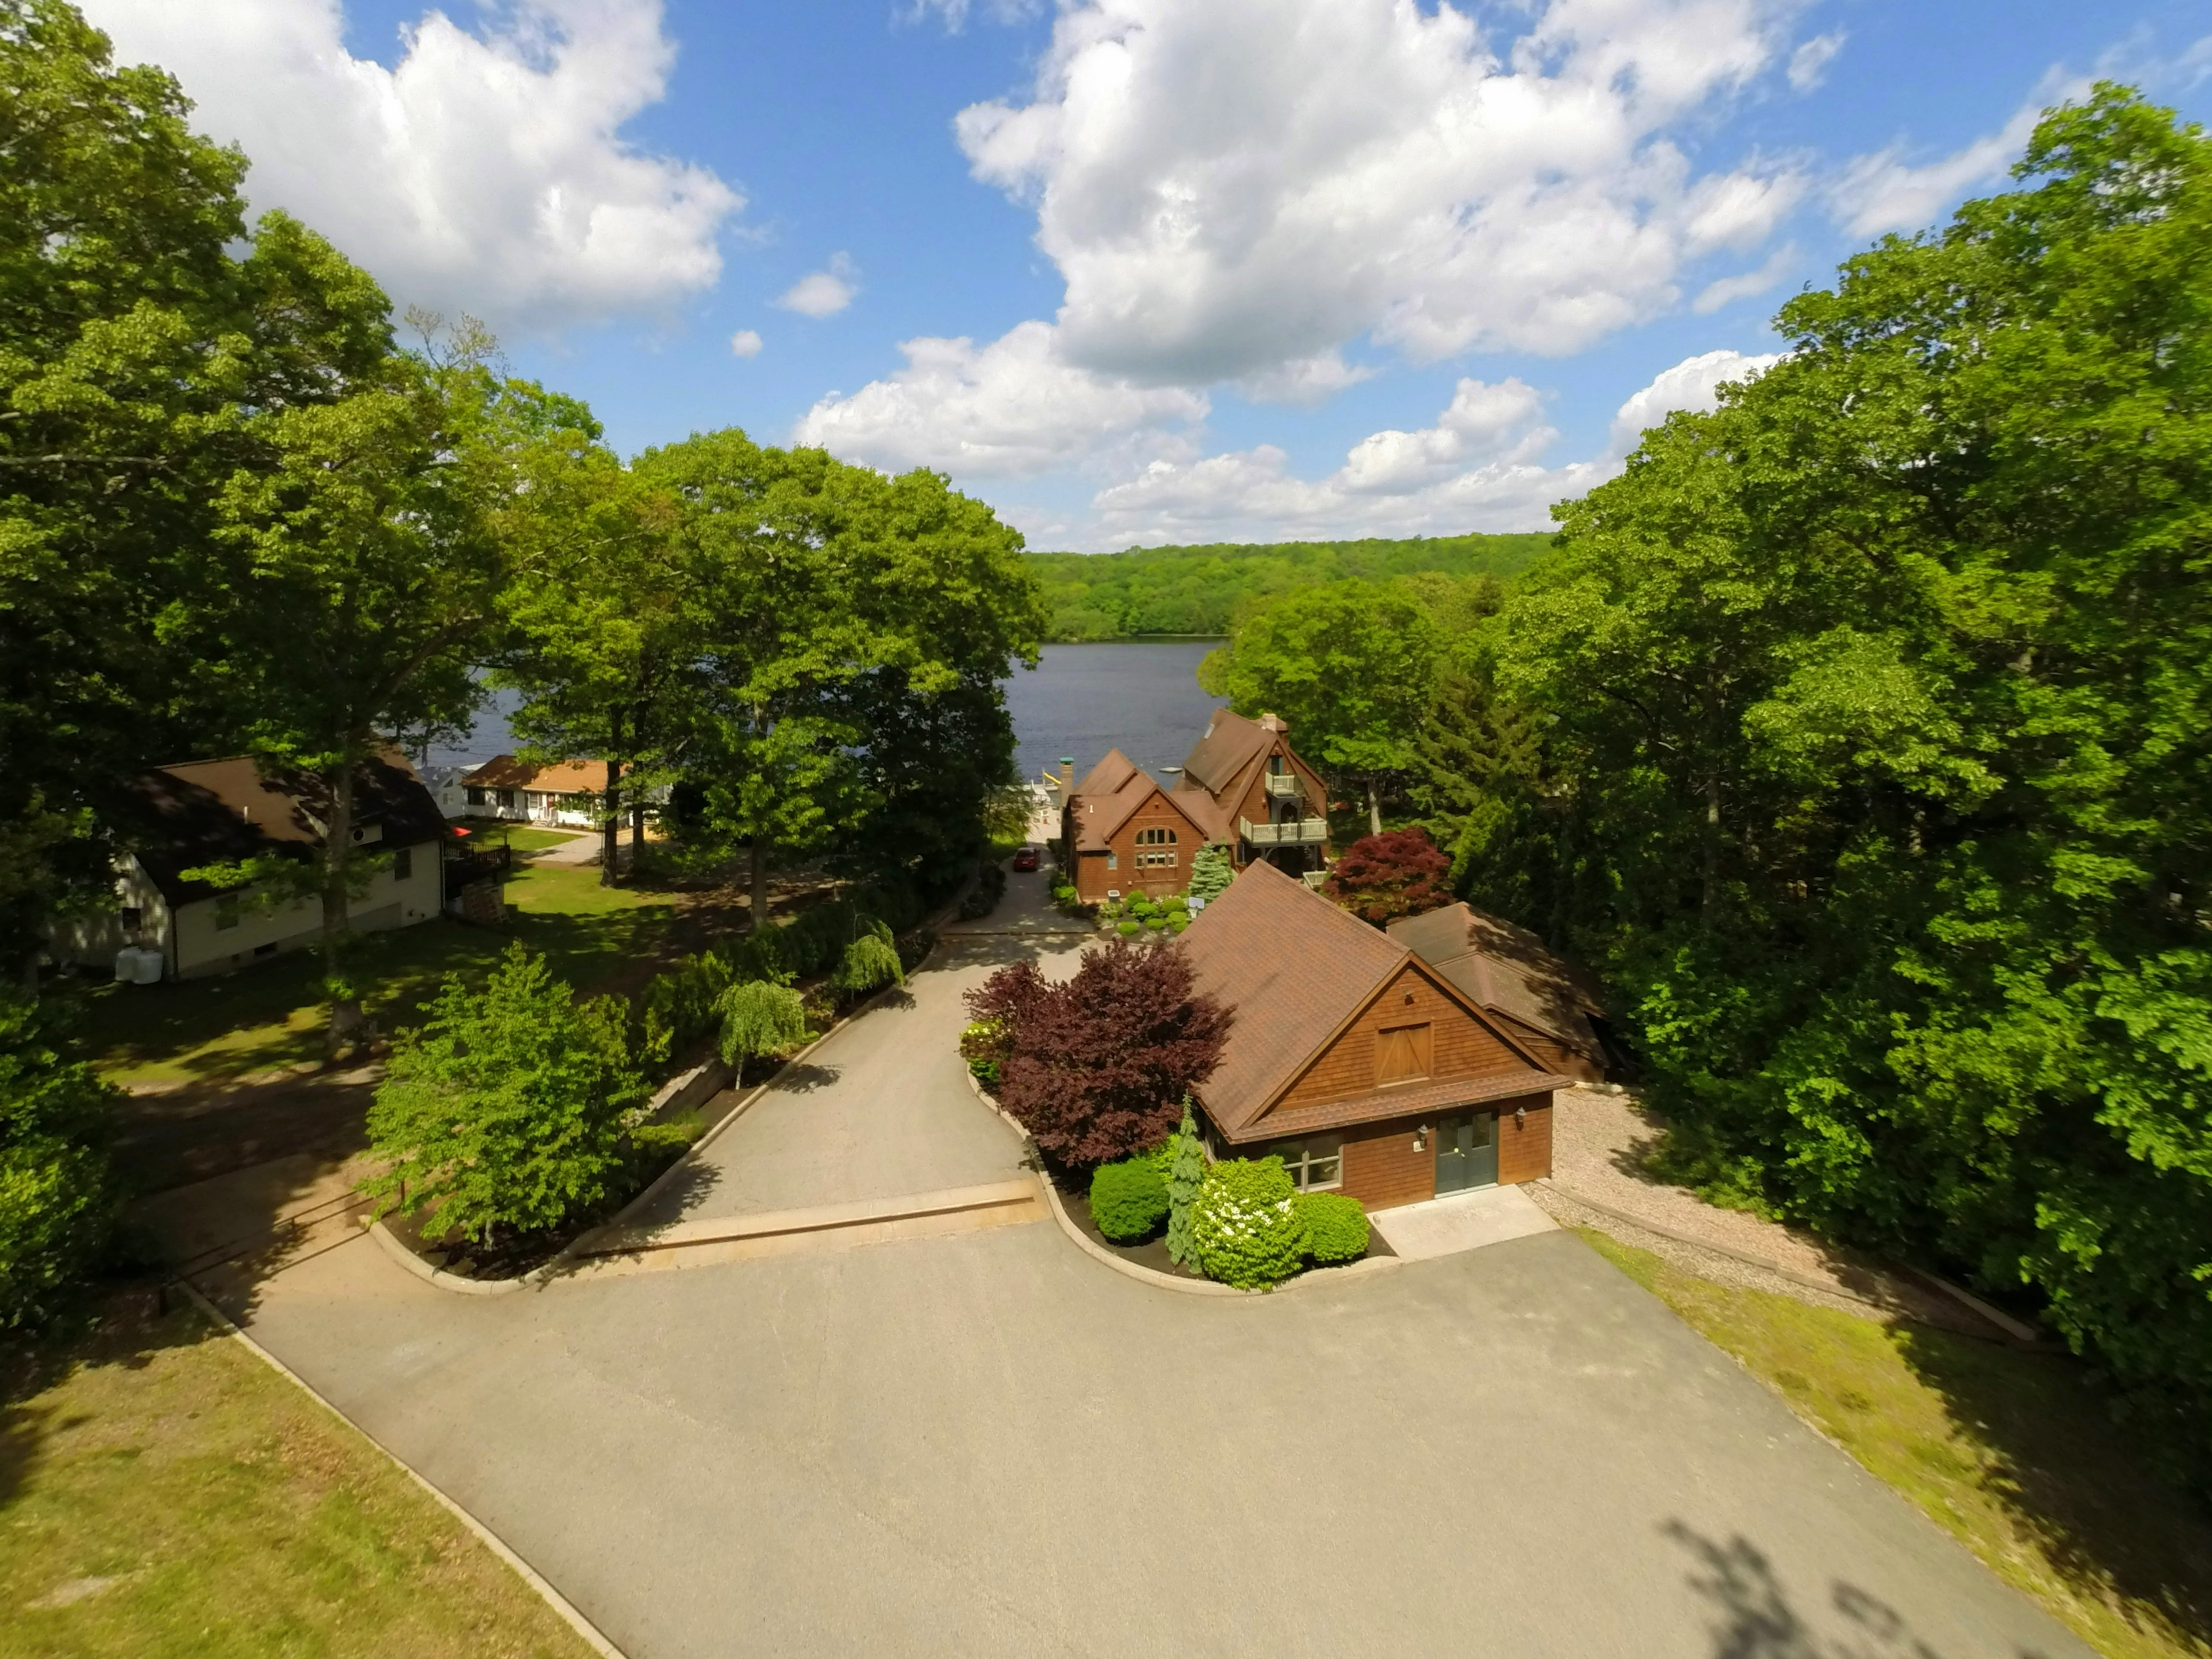 Single Family Home for Sale at The Lake House 1439 Old Colchester Rd Montville, Connecticut 06370 United States